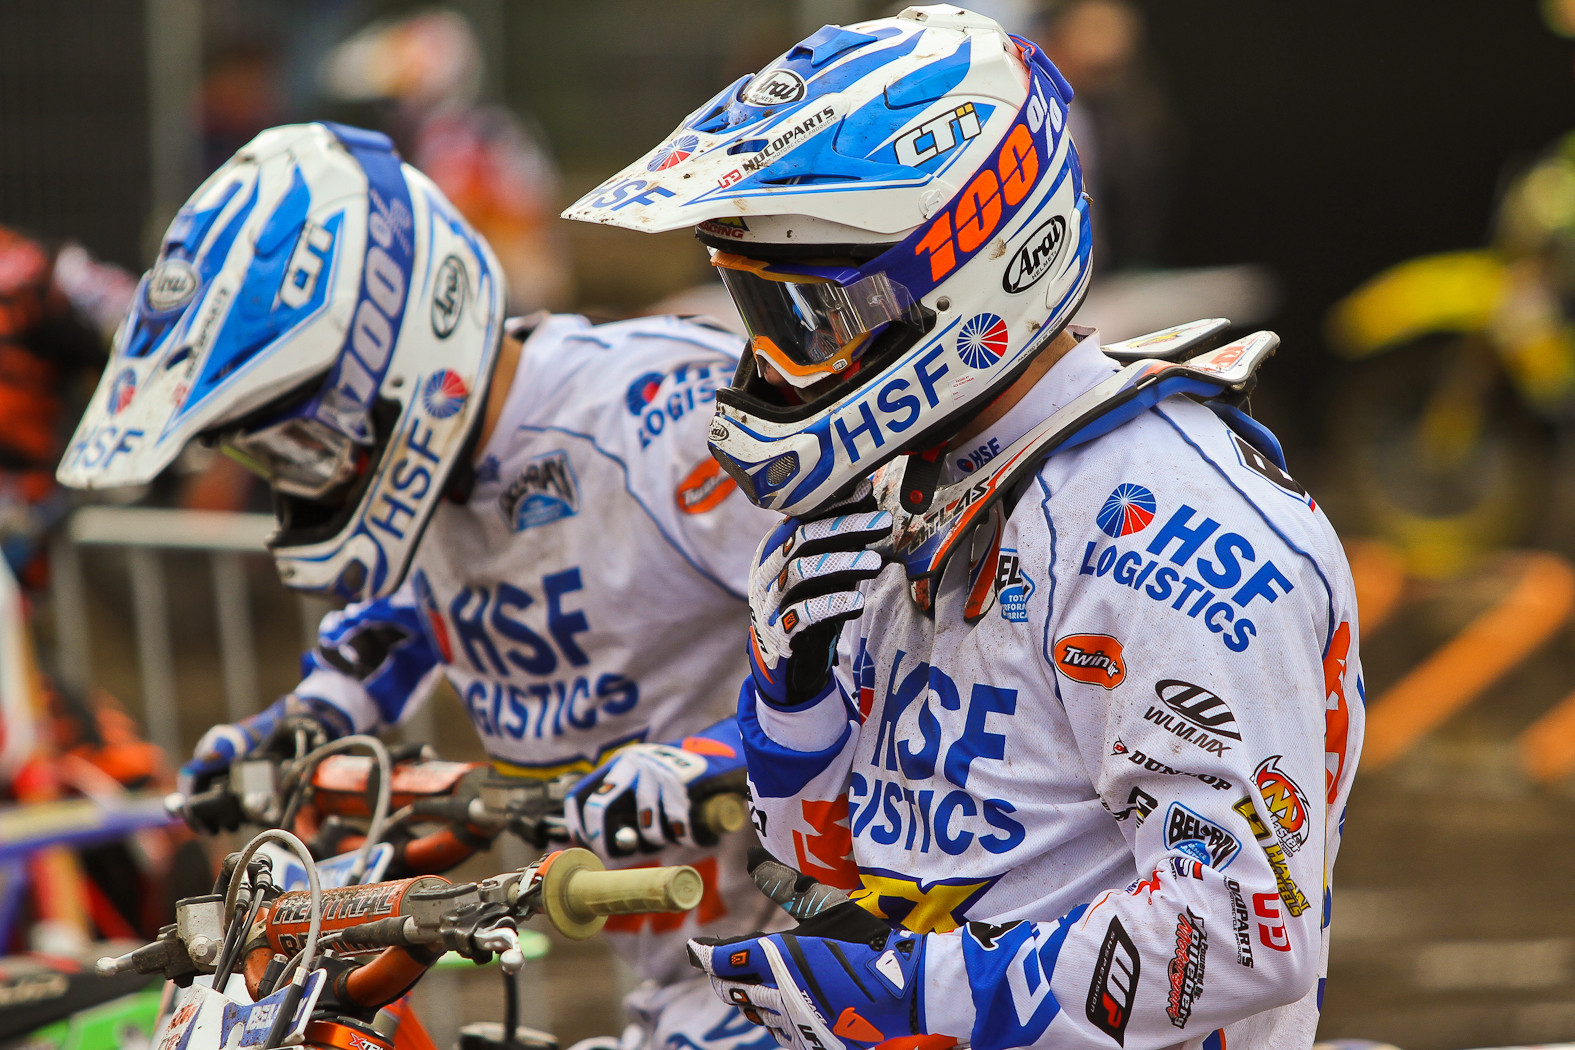 Team HSF Logistics - In the Pits: MXGP of Europe - Motocross Pictures - Vital MX